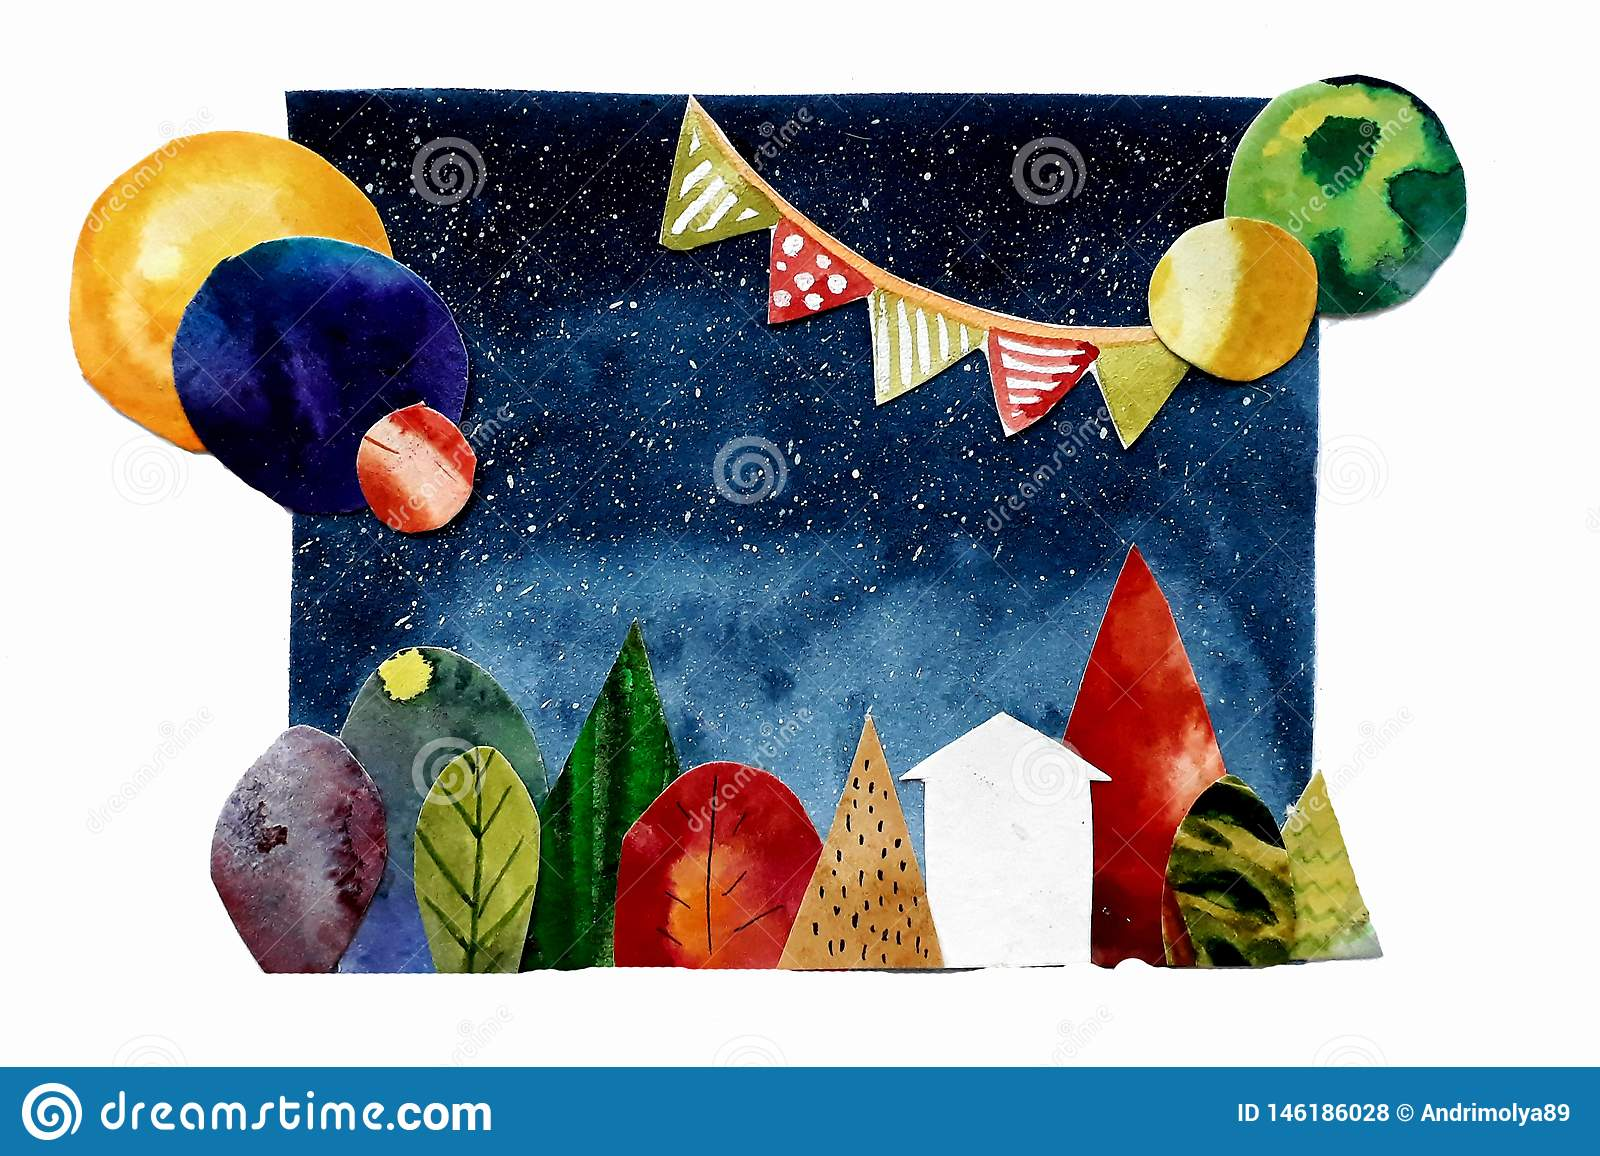 Abstract collage with trees house and planets